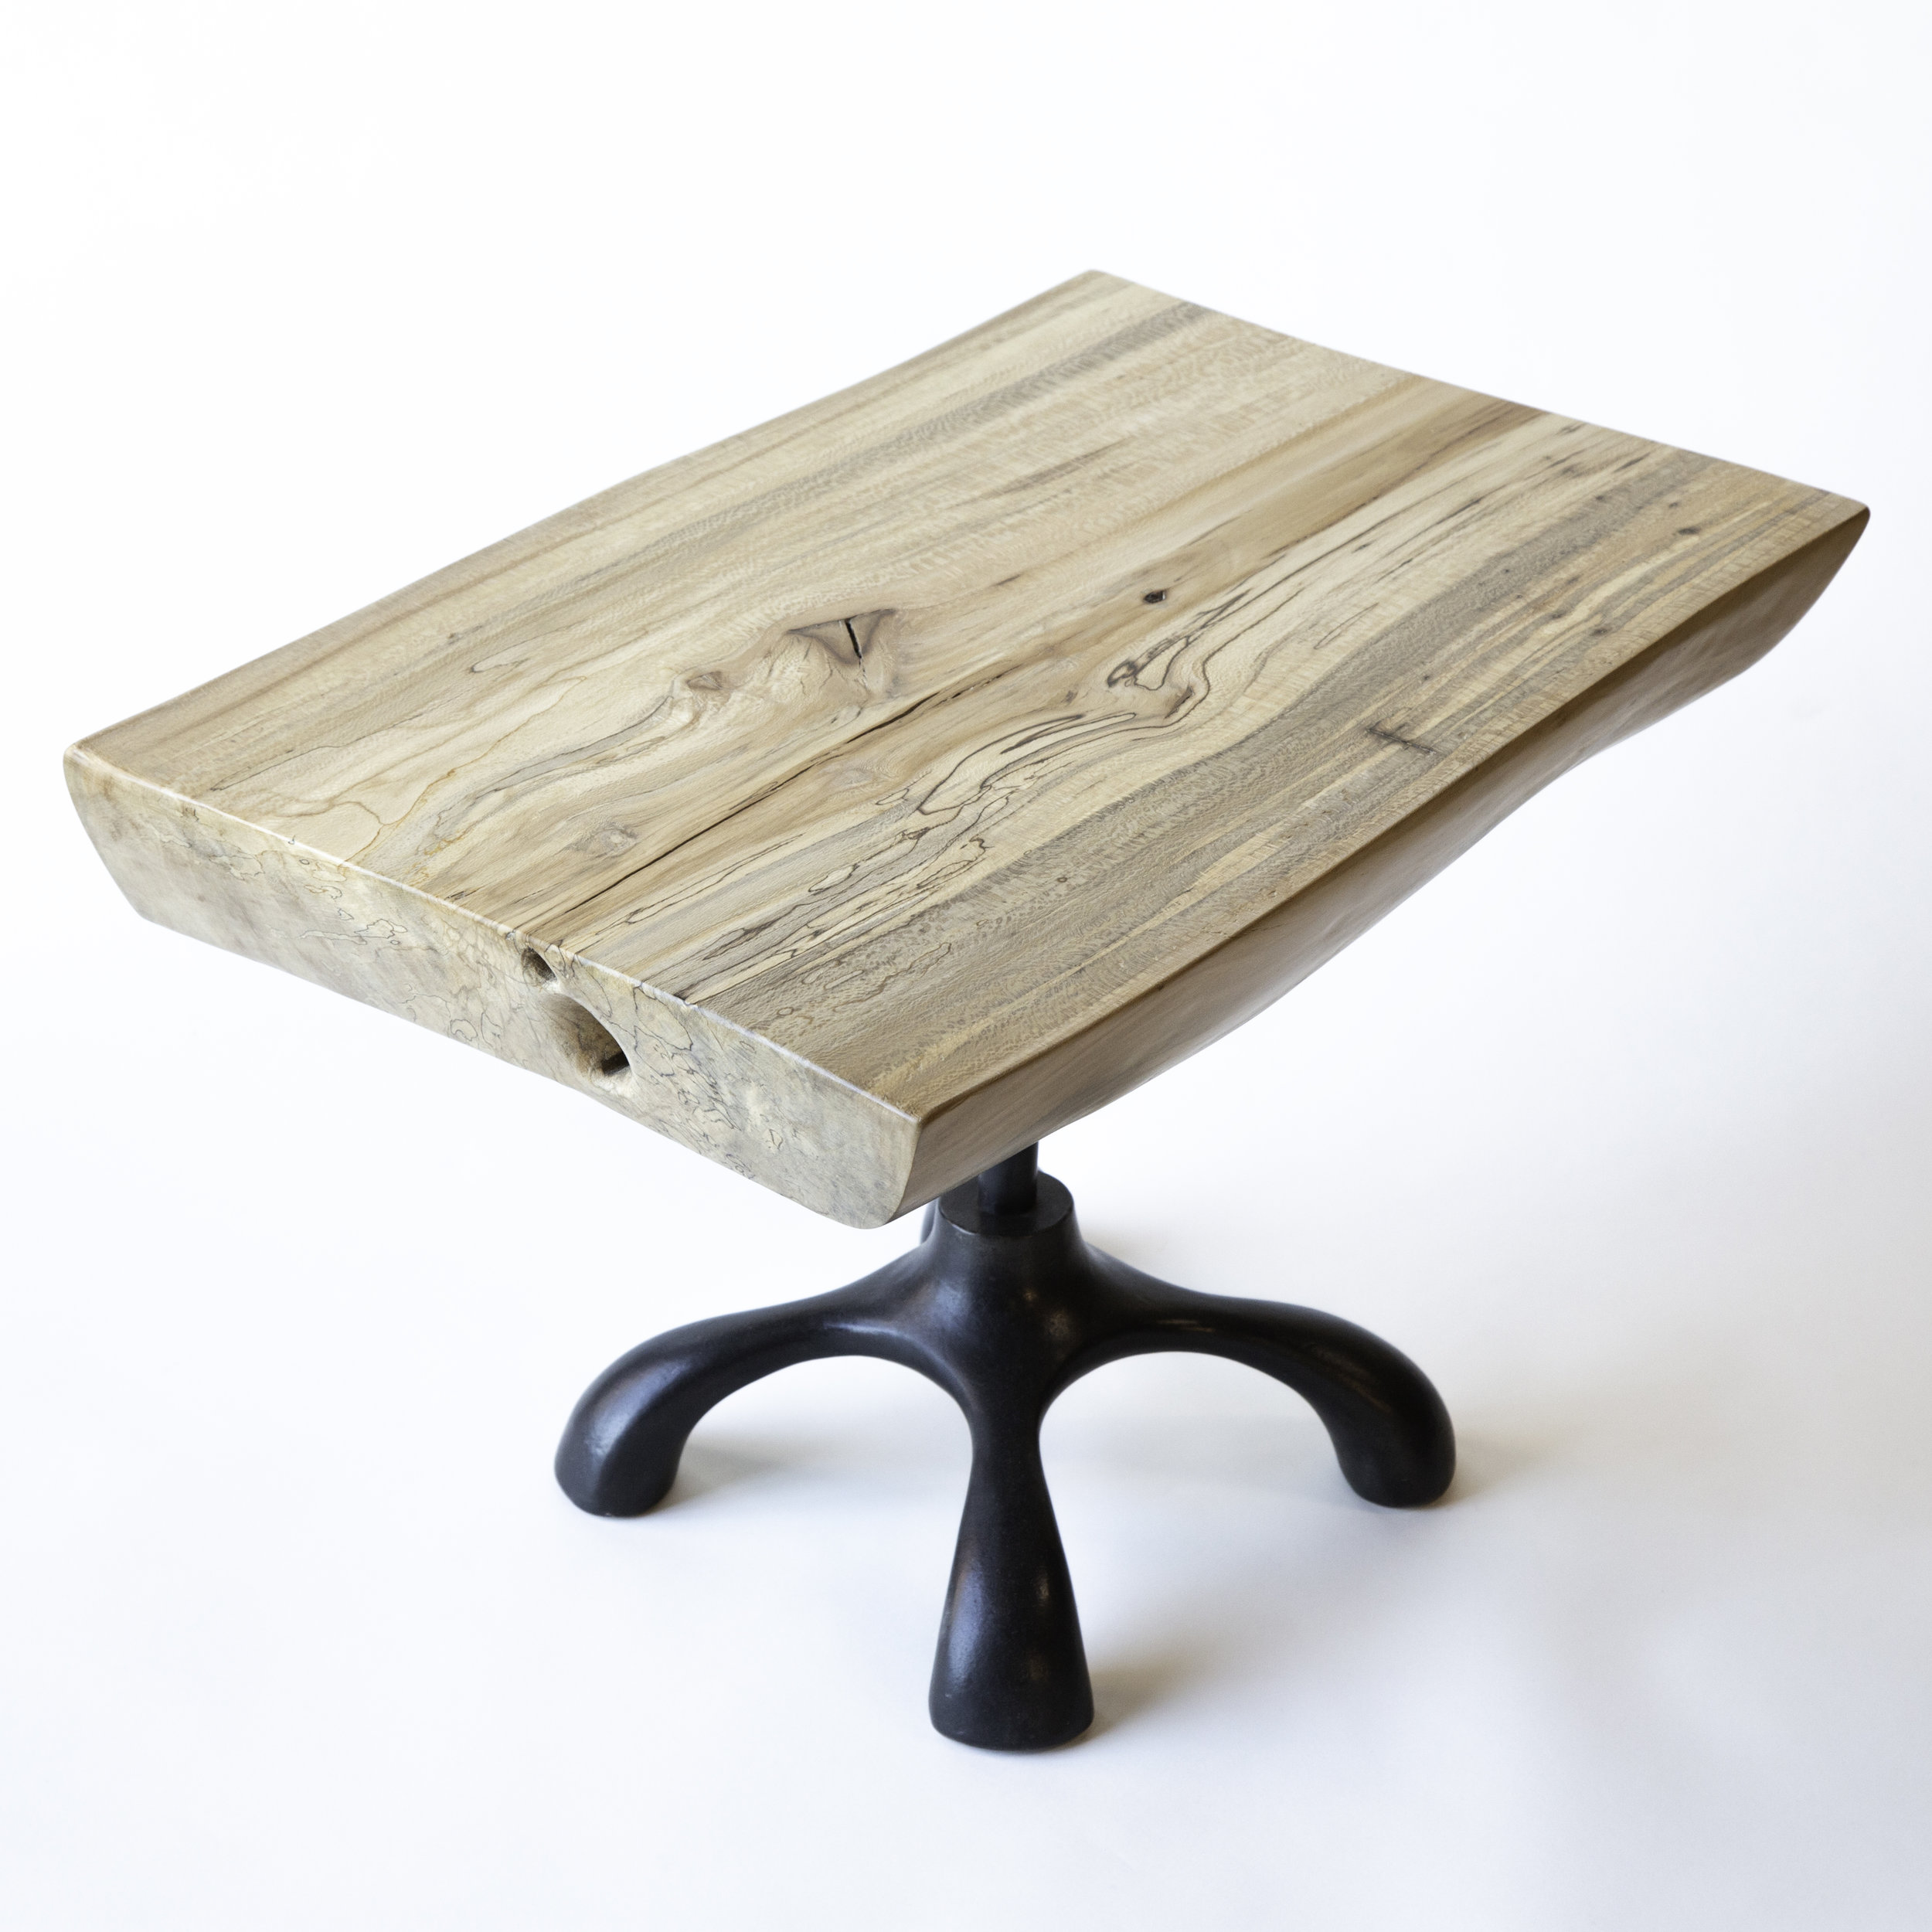 Spalted Sycamore Table